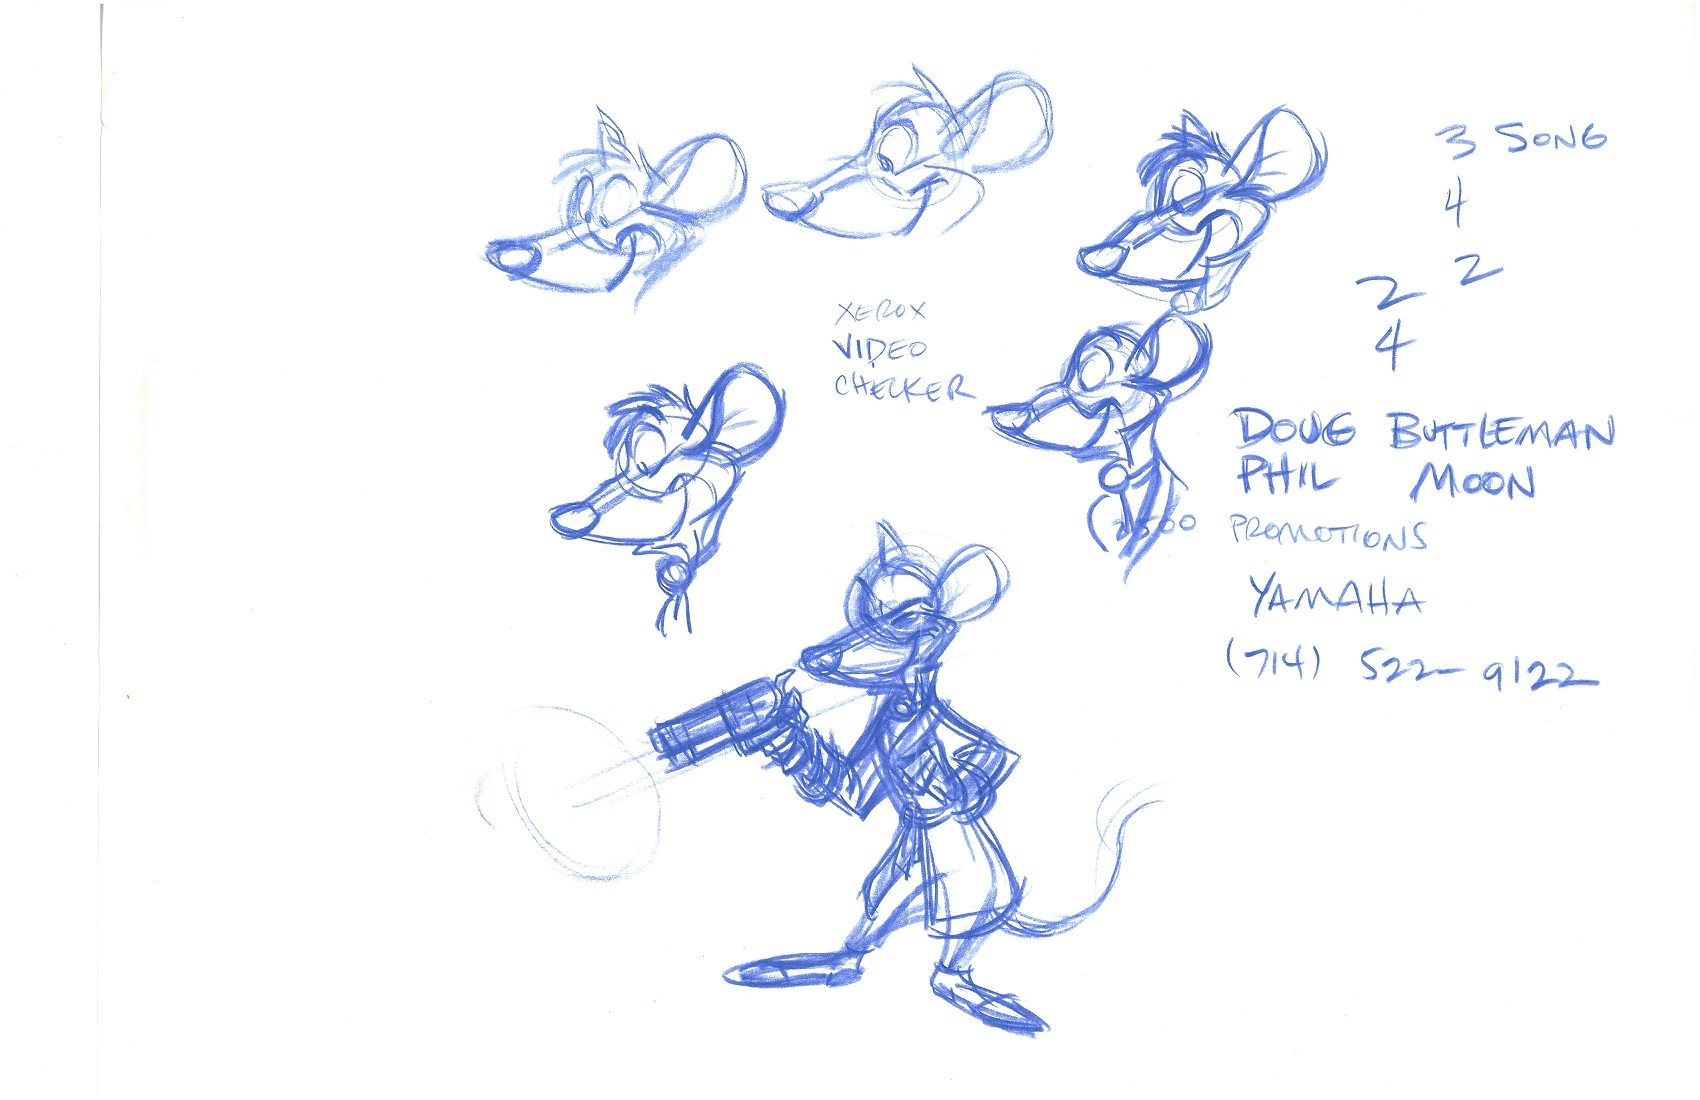 1700x1100 Basil Of Baker Street (The Great Mouse Detective) Studio Drawing